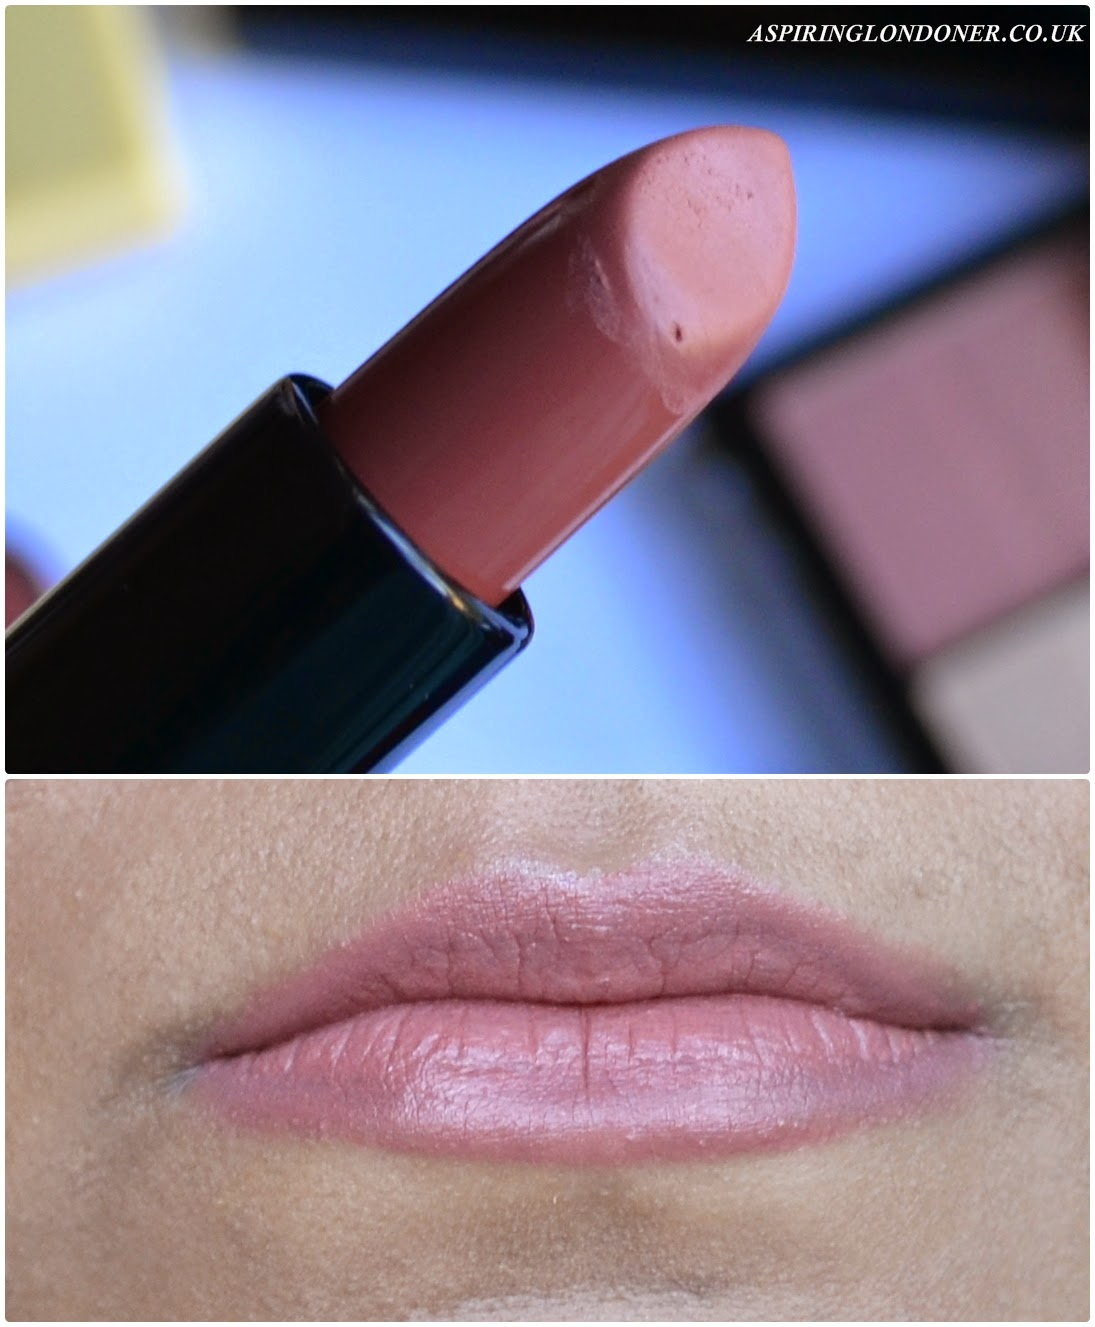 Makeup Revolution Amazing Lipstick Treat Swatch - Aspiring Londoner